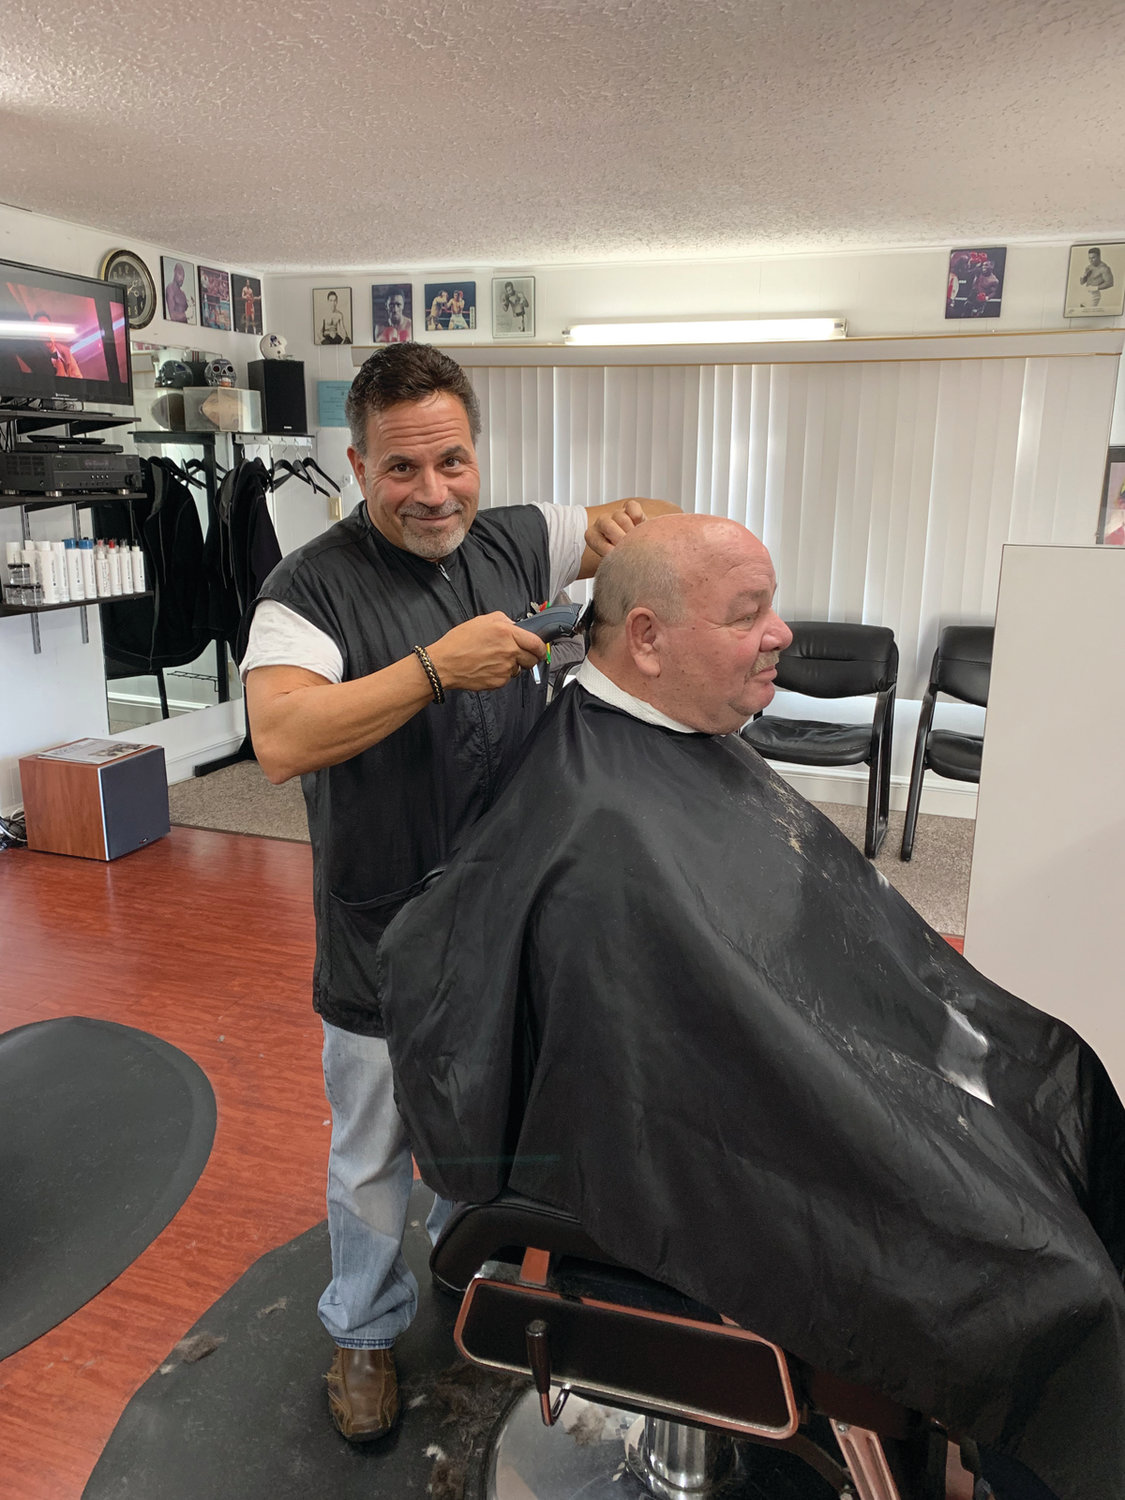 Dave Picozzi catches the lens of the camera as he cuts the hair of longtime customer Roy Kelvey.  Roy and Dave have known each other for over 30 years when Dave first started cutting Roy's hair. Loyalty and longevity are two things David's Greenwood Barbershop values and has worked hard for.